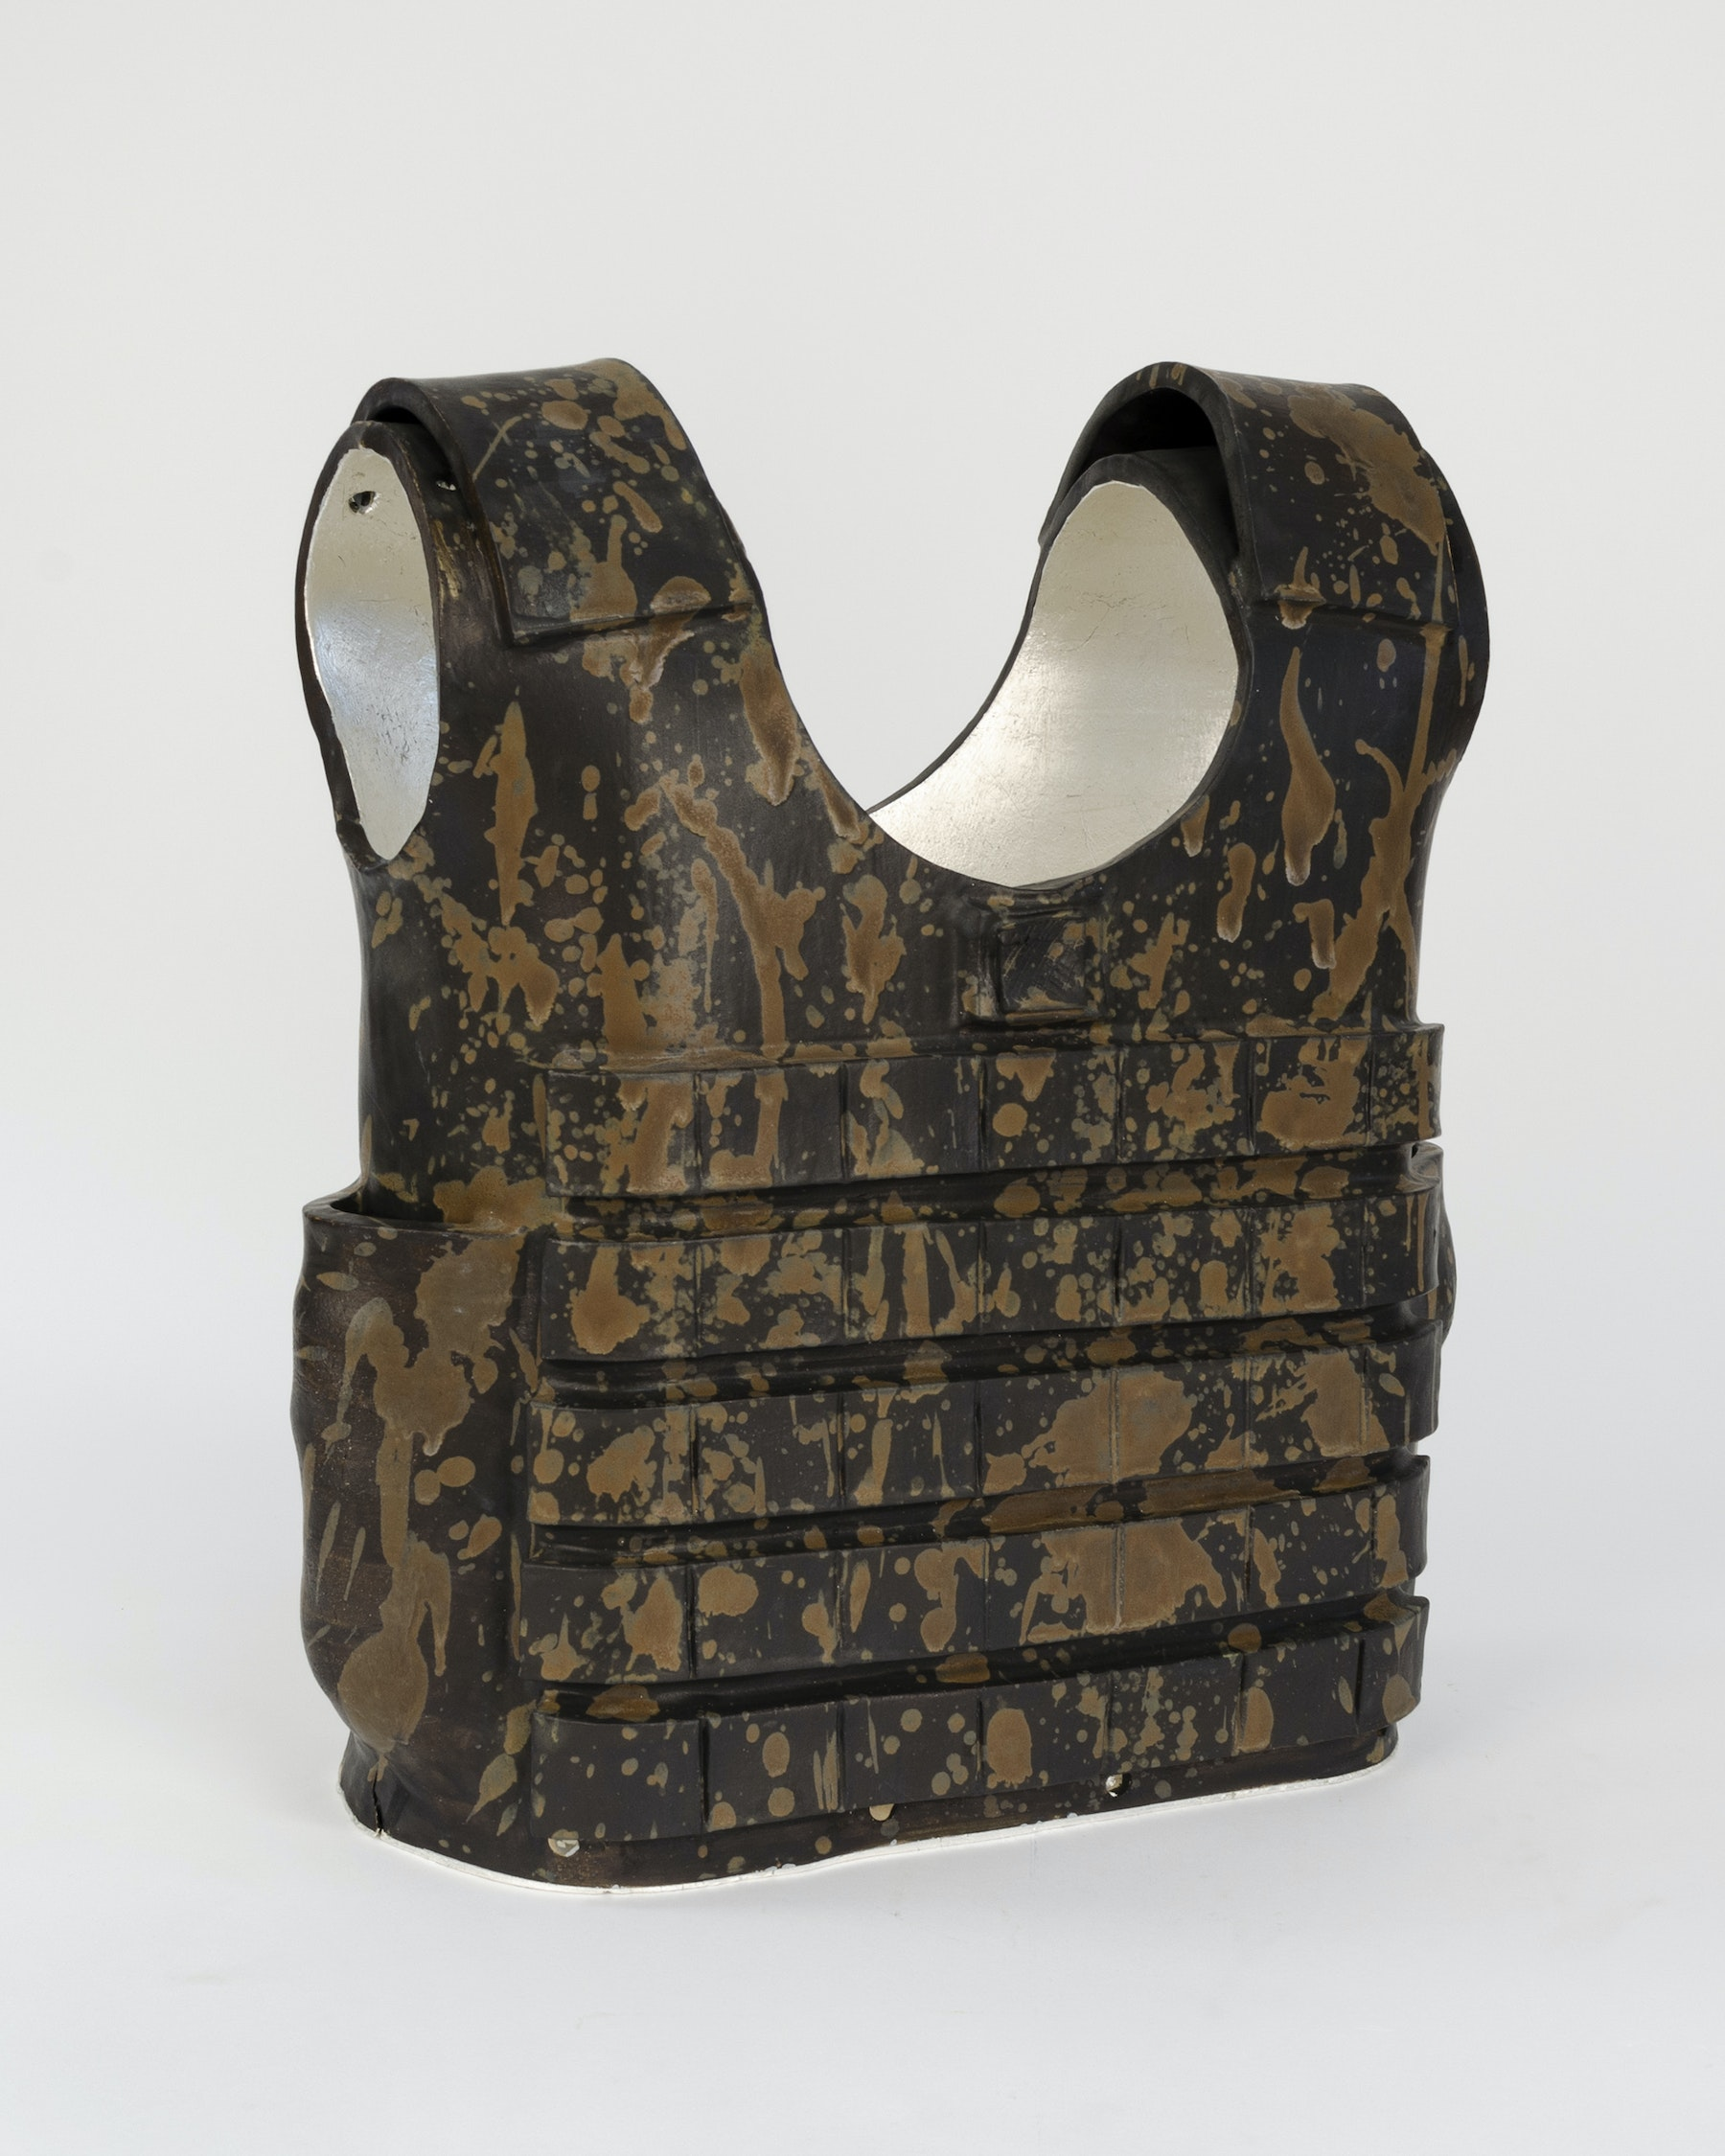 "Liz Glynn ""Decorative Protection (For What May Come),"" 2020 Glazed ceramic with silver leaf 17 x 15.25 x 7"" [HxWxD] (43.18 x 38.74 x 17.78 cm) Inventory #GLY175 Courtesy of the artist and Vielmetter Los Angeles"